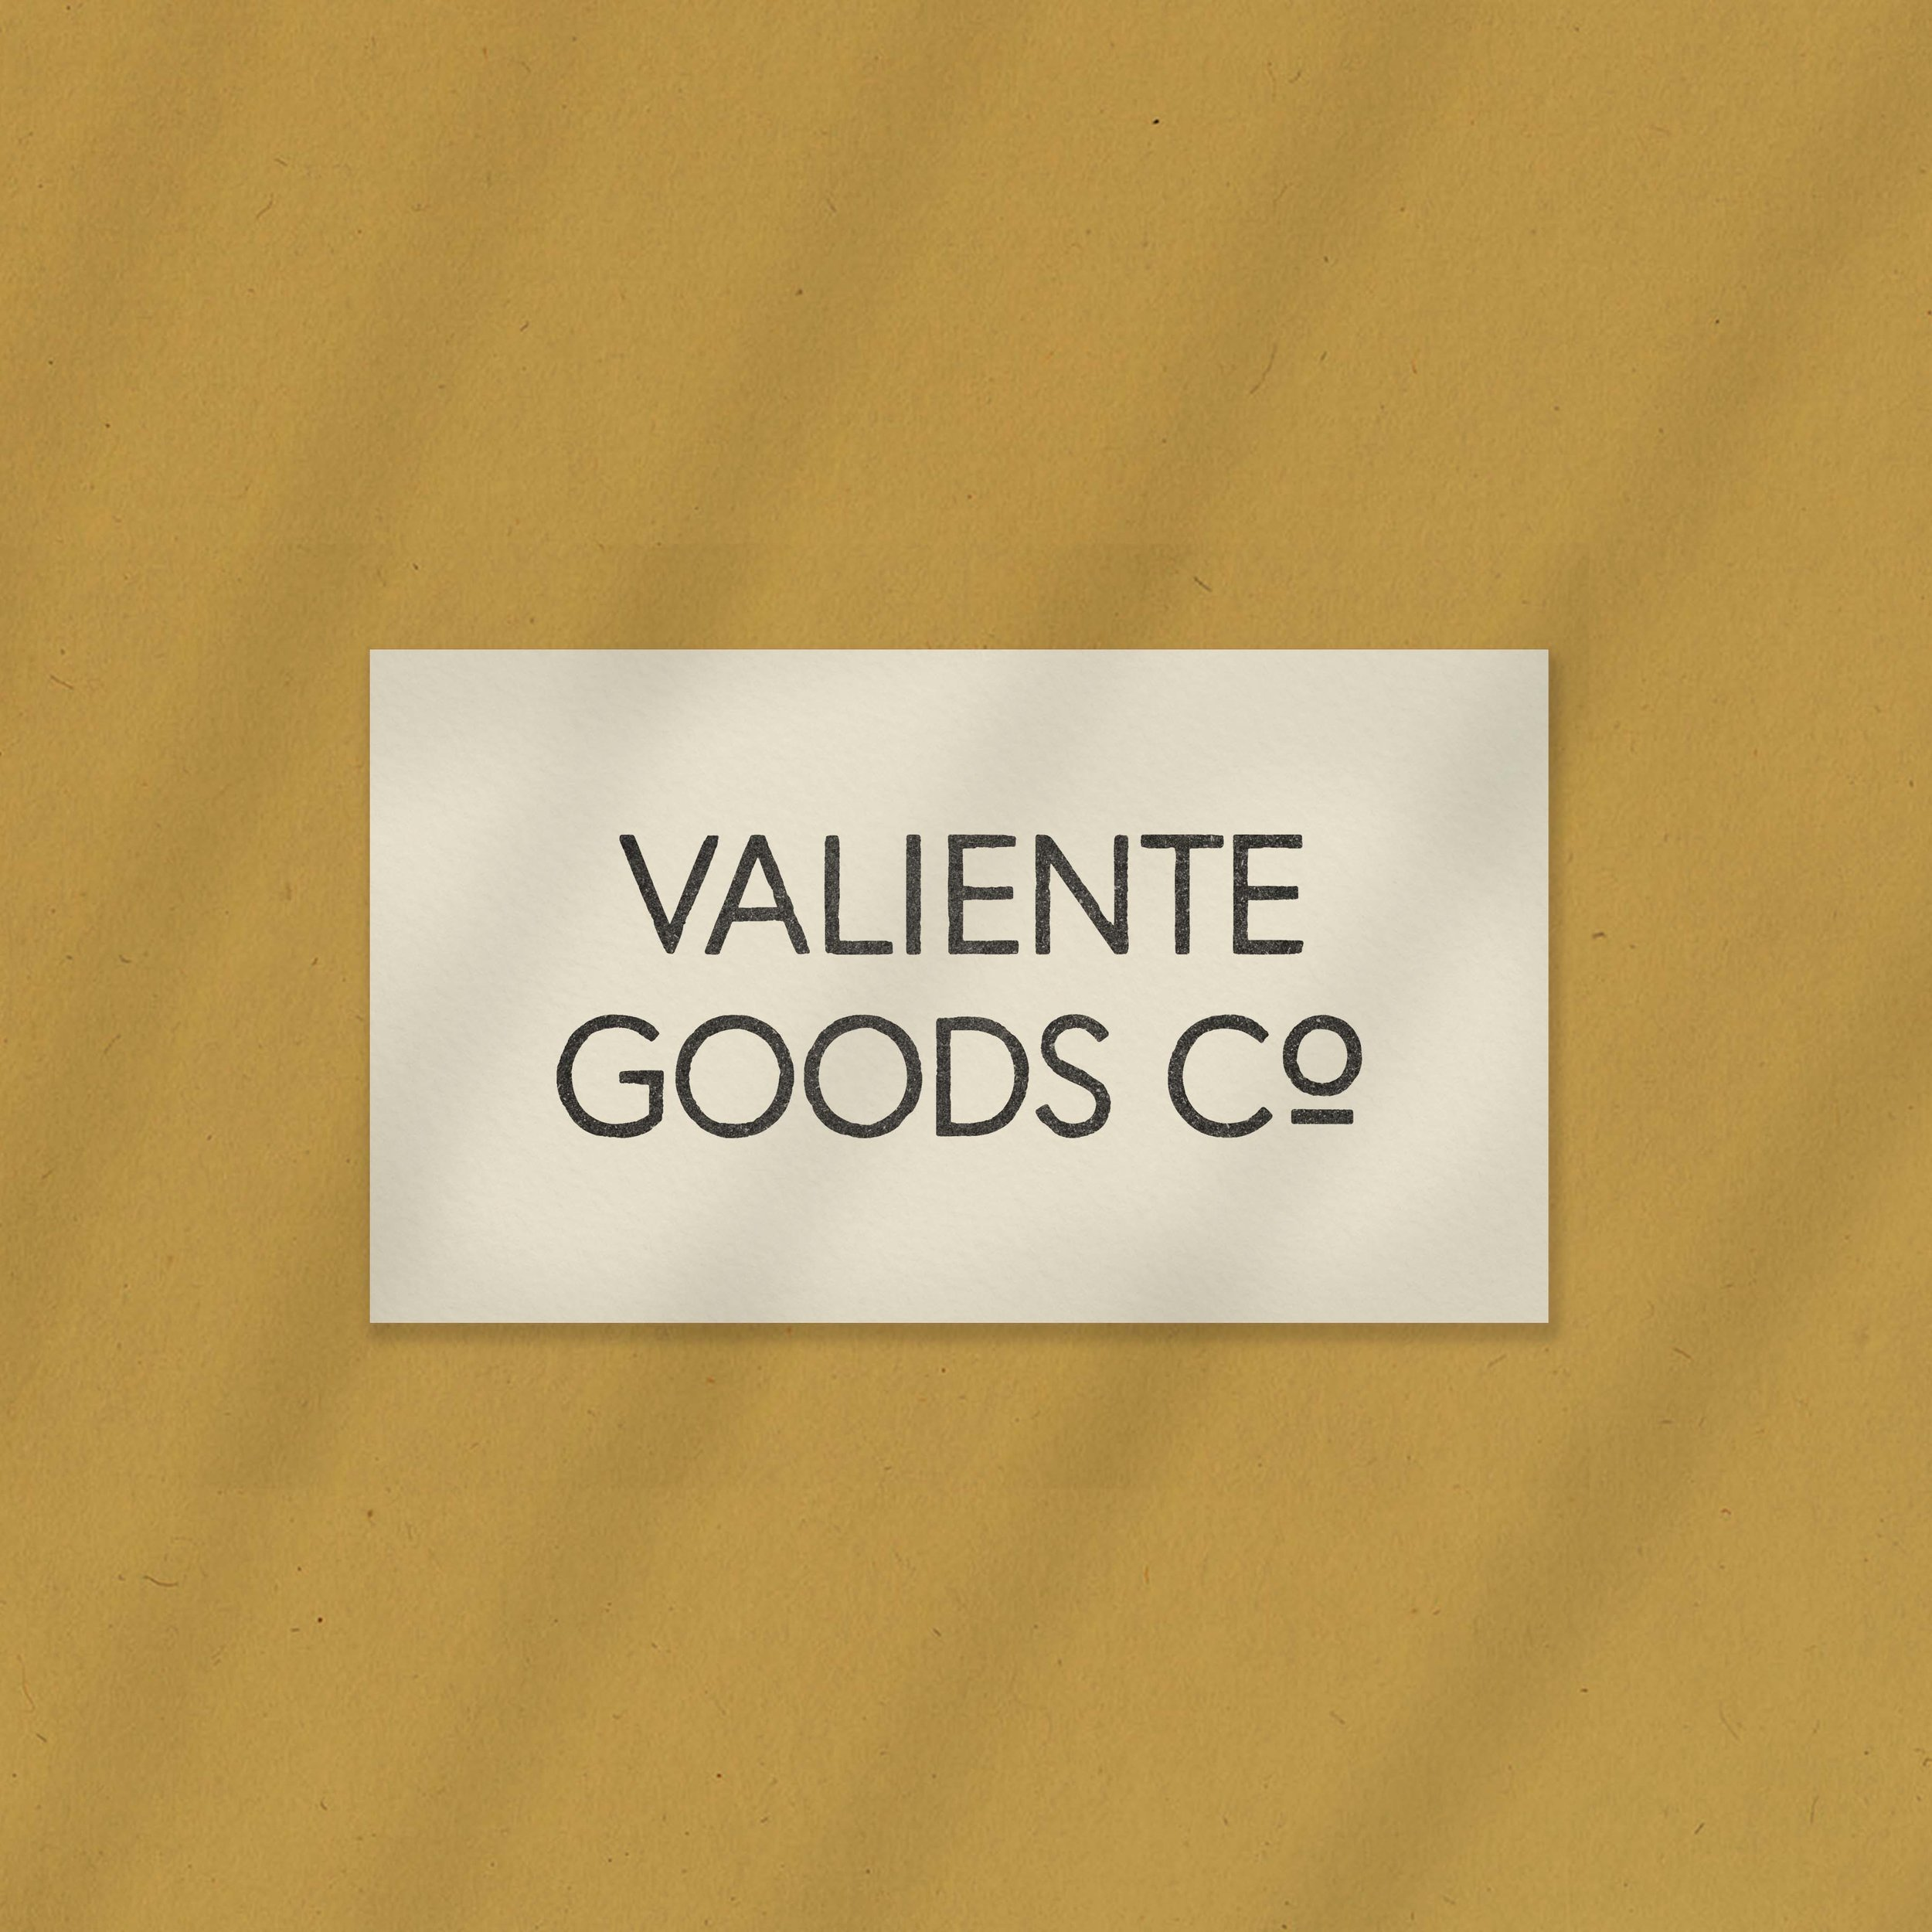 Valiente_Branding_IG_Business-Card2.jpg